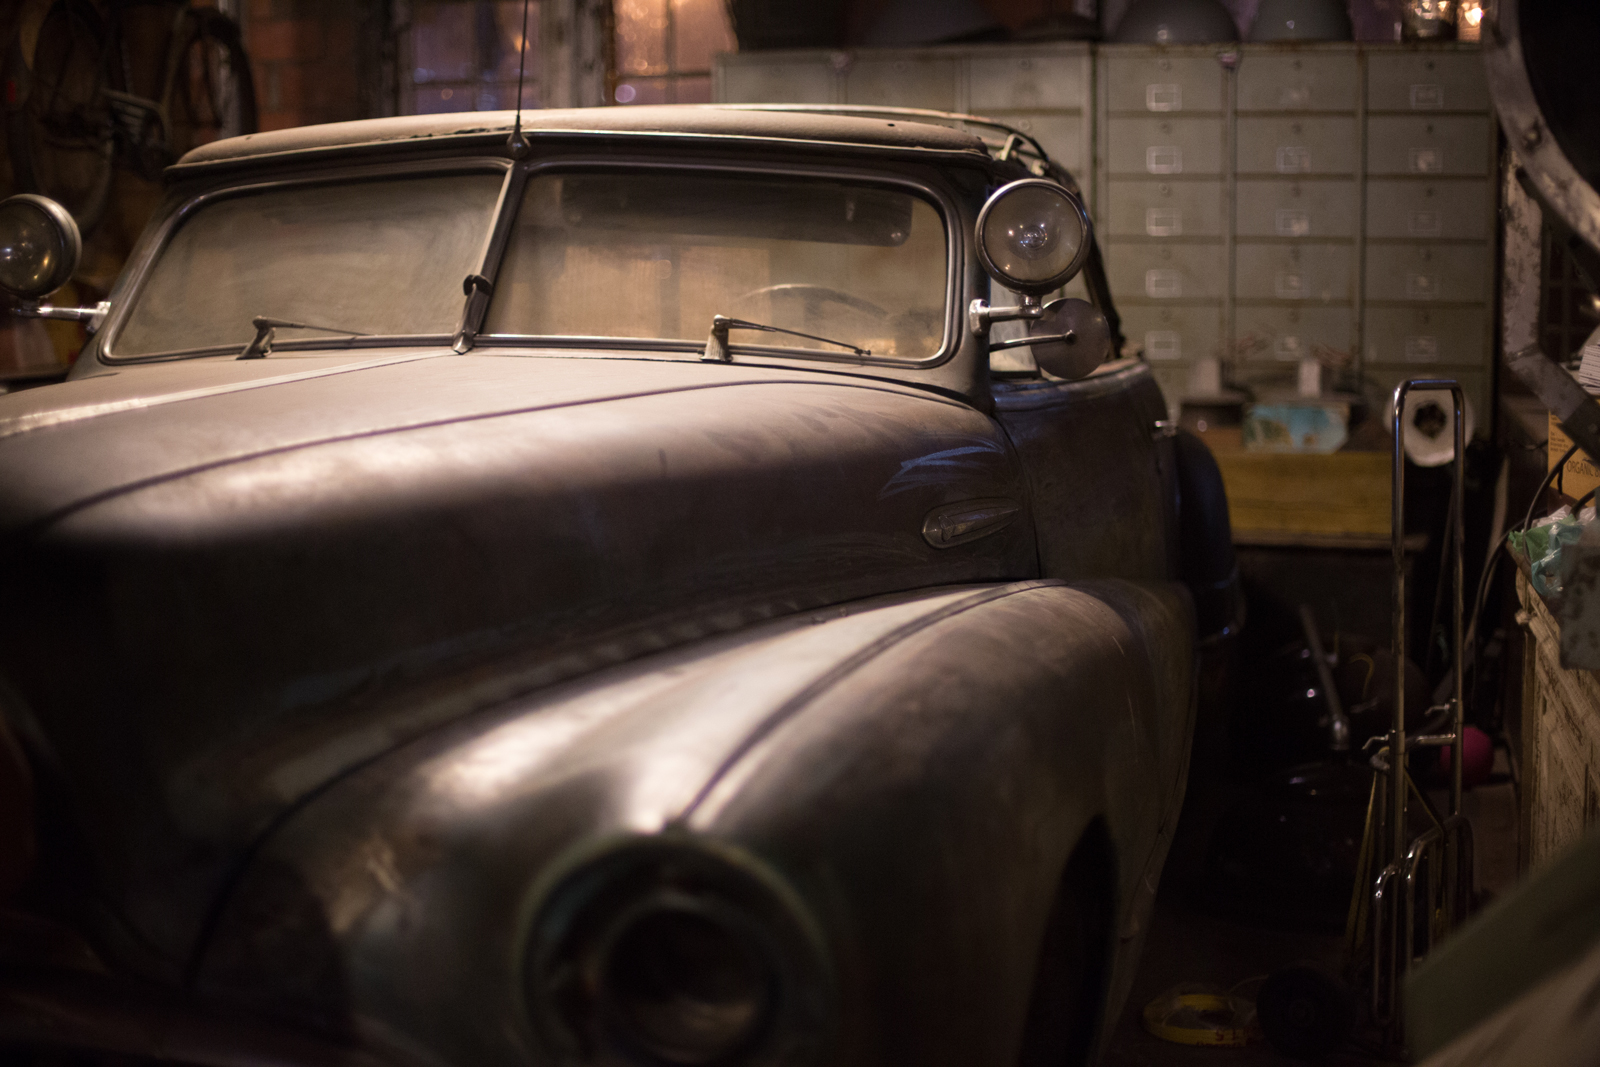 A dusty classic car parked in a garage during restoration